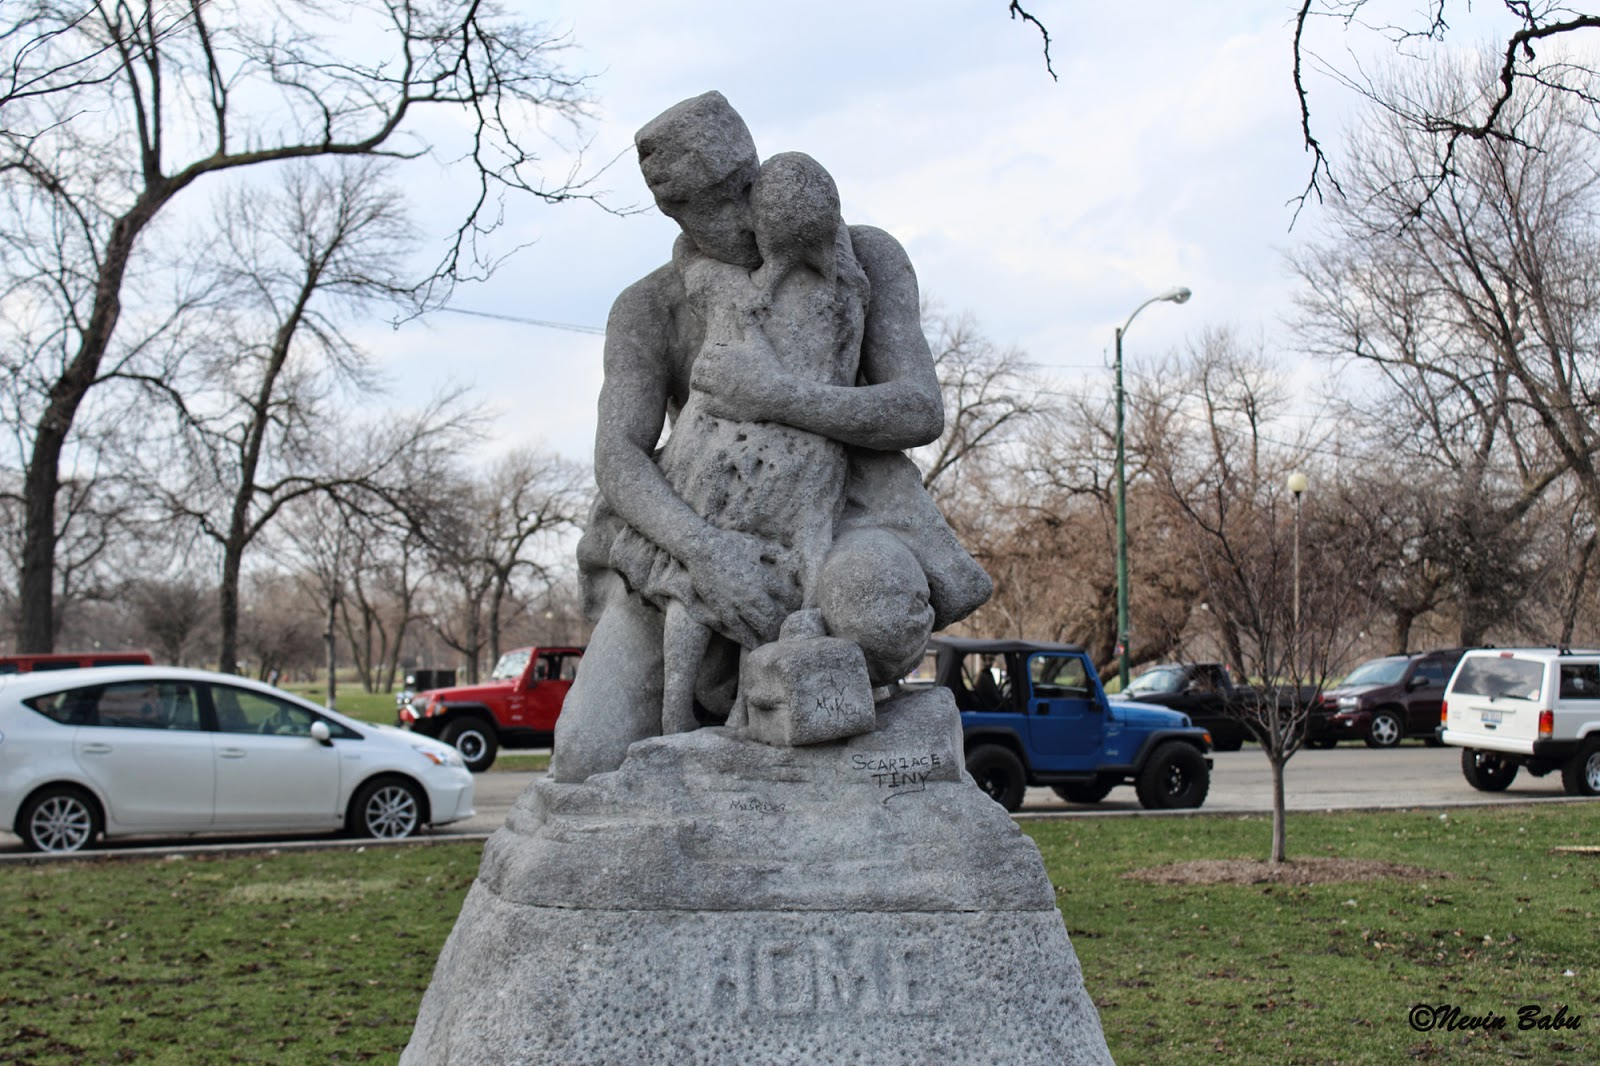 Home sculpture at Humboldt Park